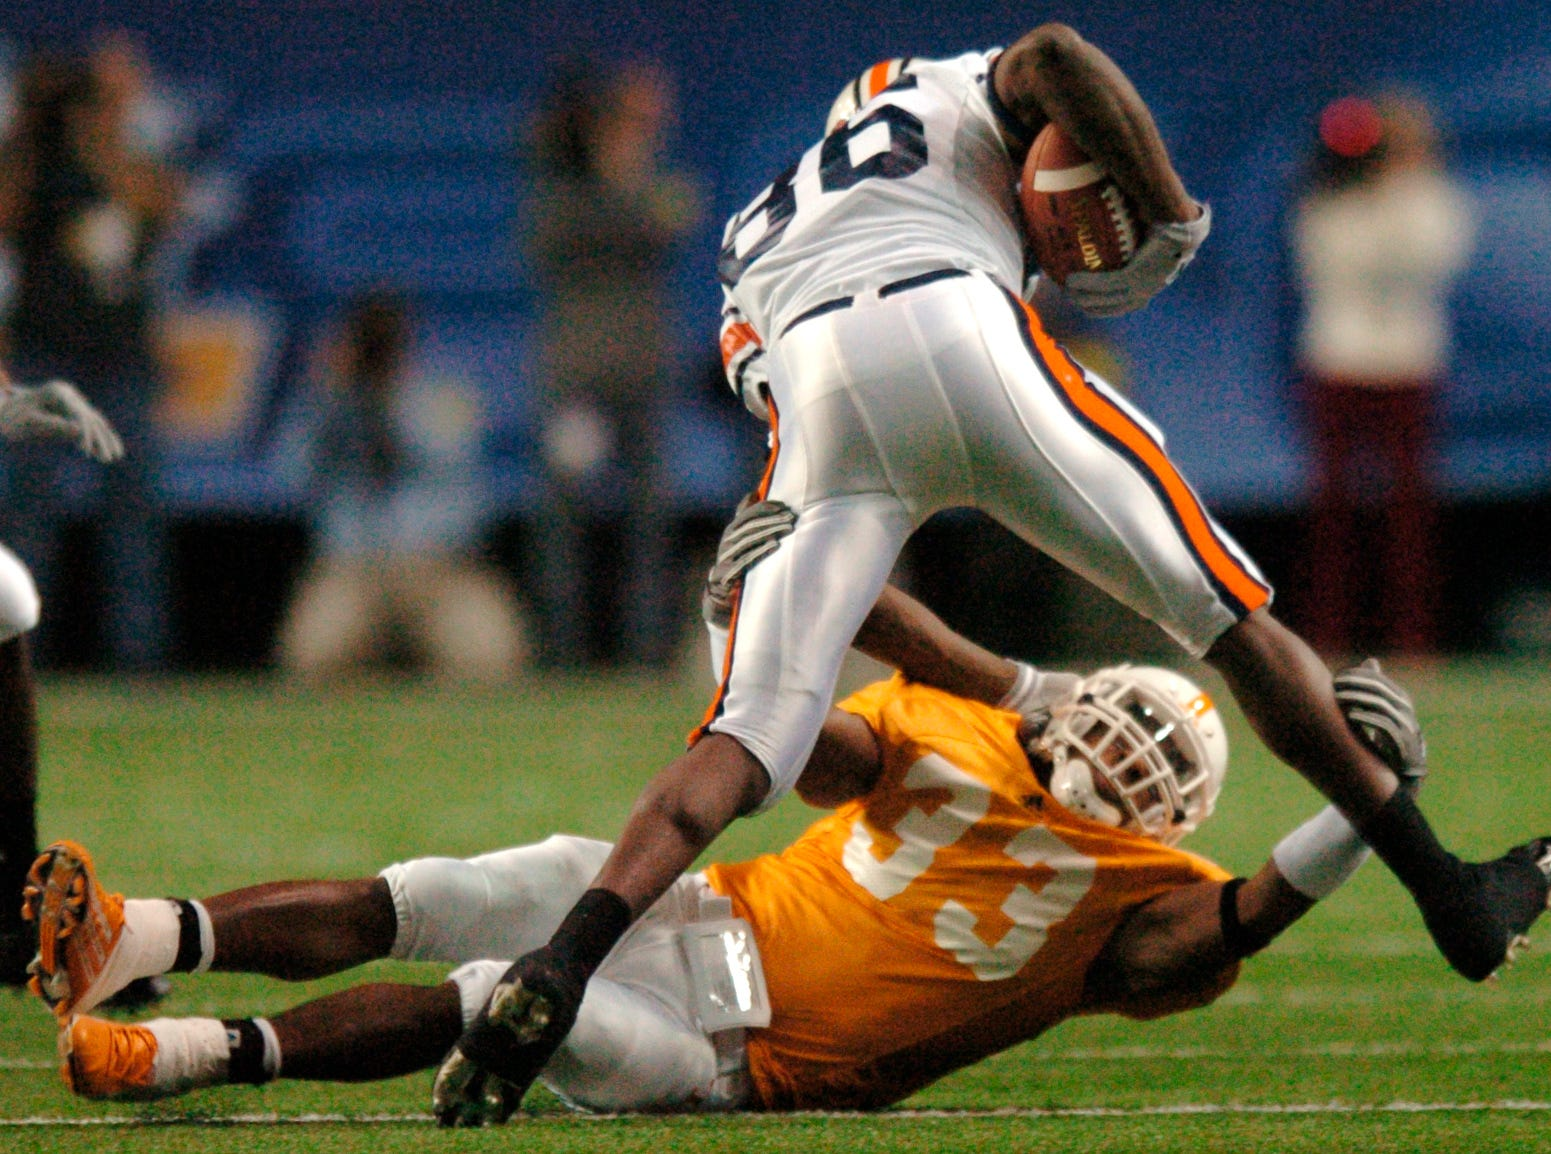 UT's Jonathan Hefney (33) tries to take down Auburn's Courtney Taylor (86) during the SEC Championship Game in the Georgia Dome Saturday night in Atlanta in 2004.